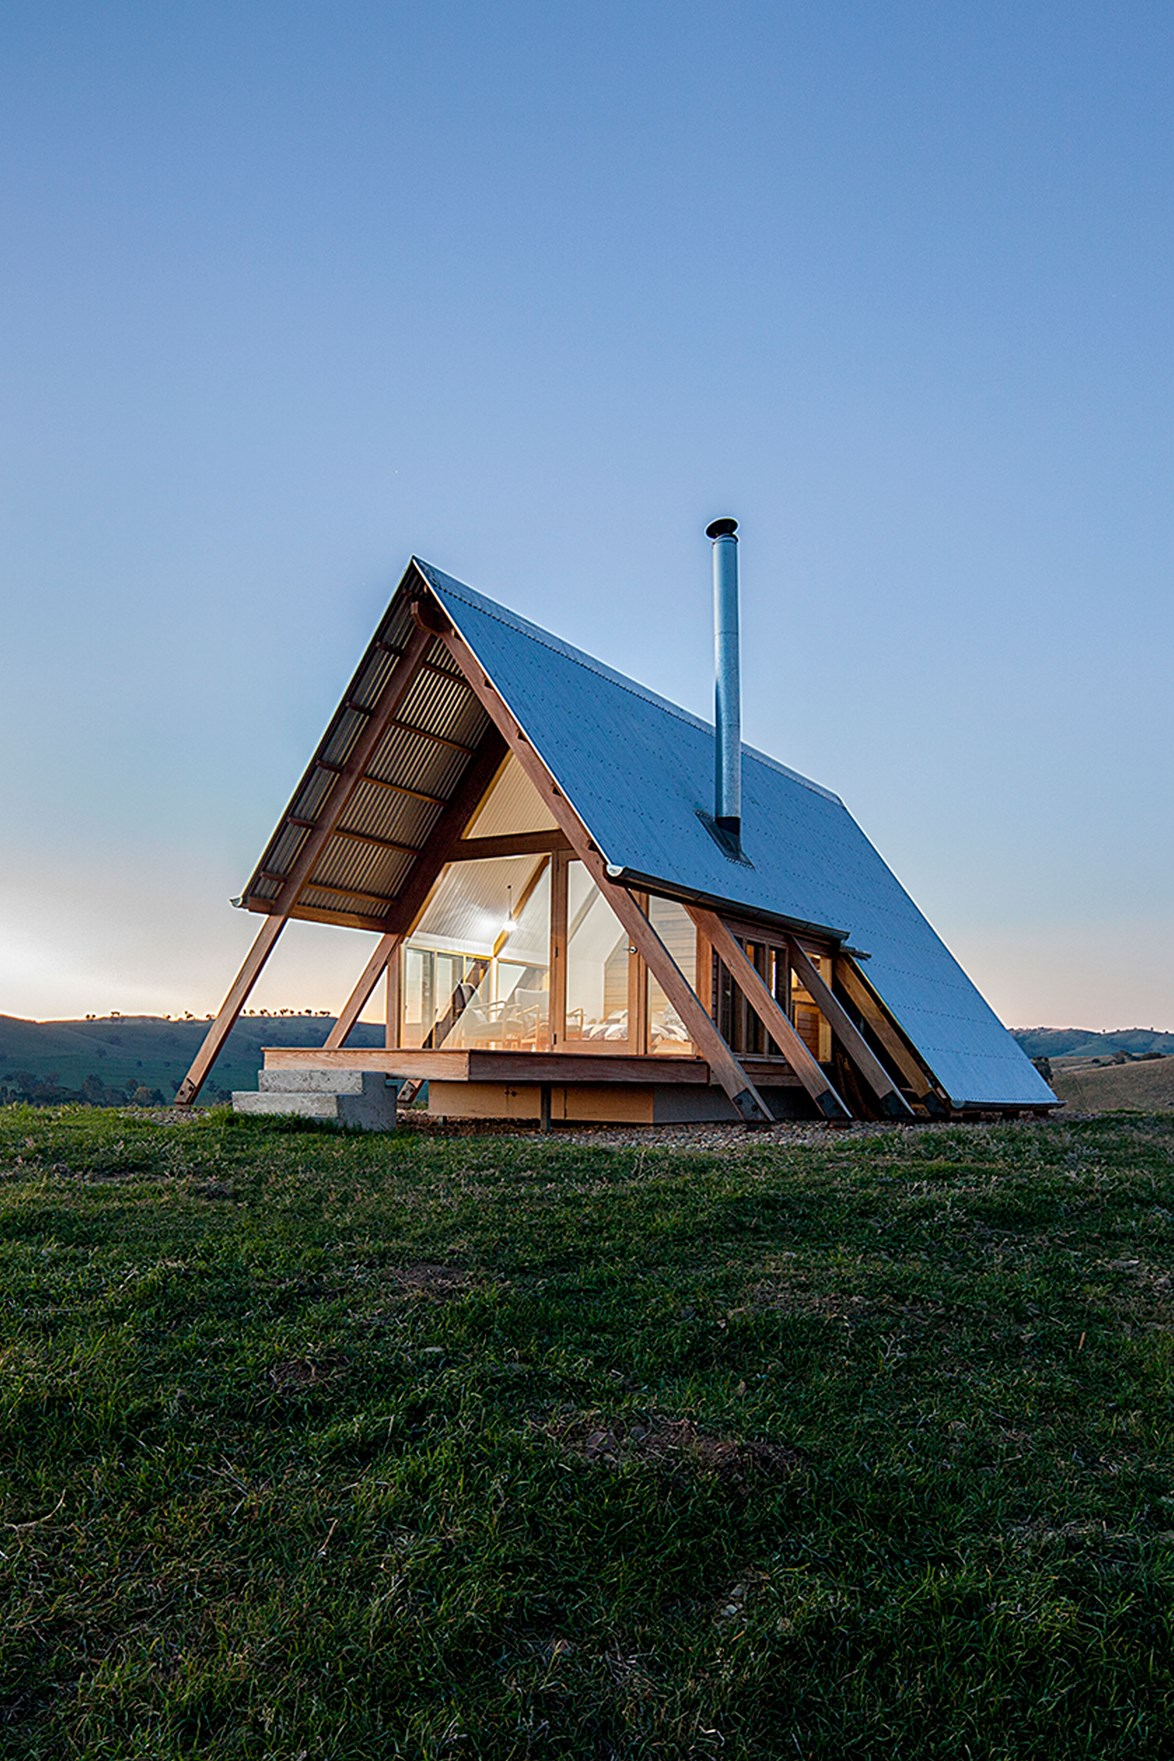 """<p>**Kimo Estate, Gundagai, NSW**<P> <P>Your own private cabin? Check. 360 degree views? Check. A private hot tub? Check. [Kimo Estate's eco huts](https://www.homestolove.com.au/luxury-cabin-kimo-estate-20244